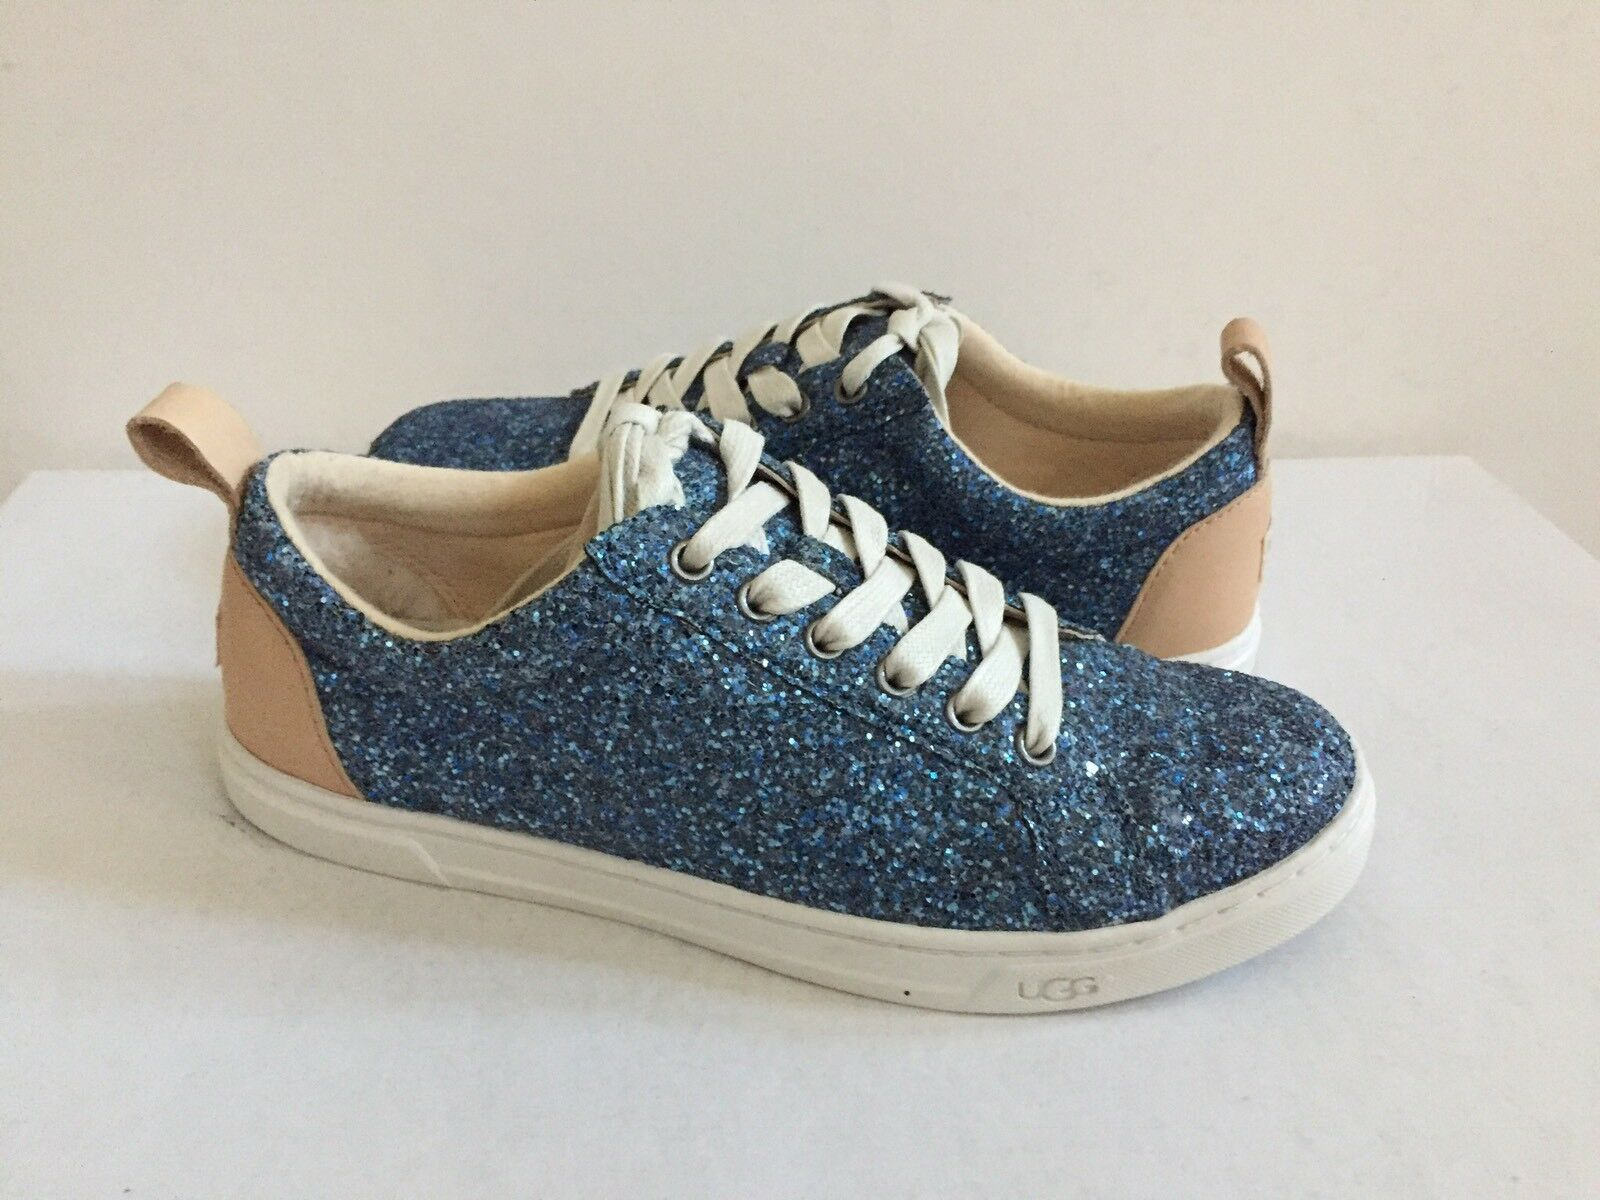 UGG KARINE CHUNKY GLITTER BLUE MULTI LACE UP SNEAKERS US 7 / EU 38 / UK 5.5 NIB